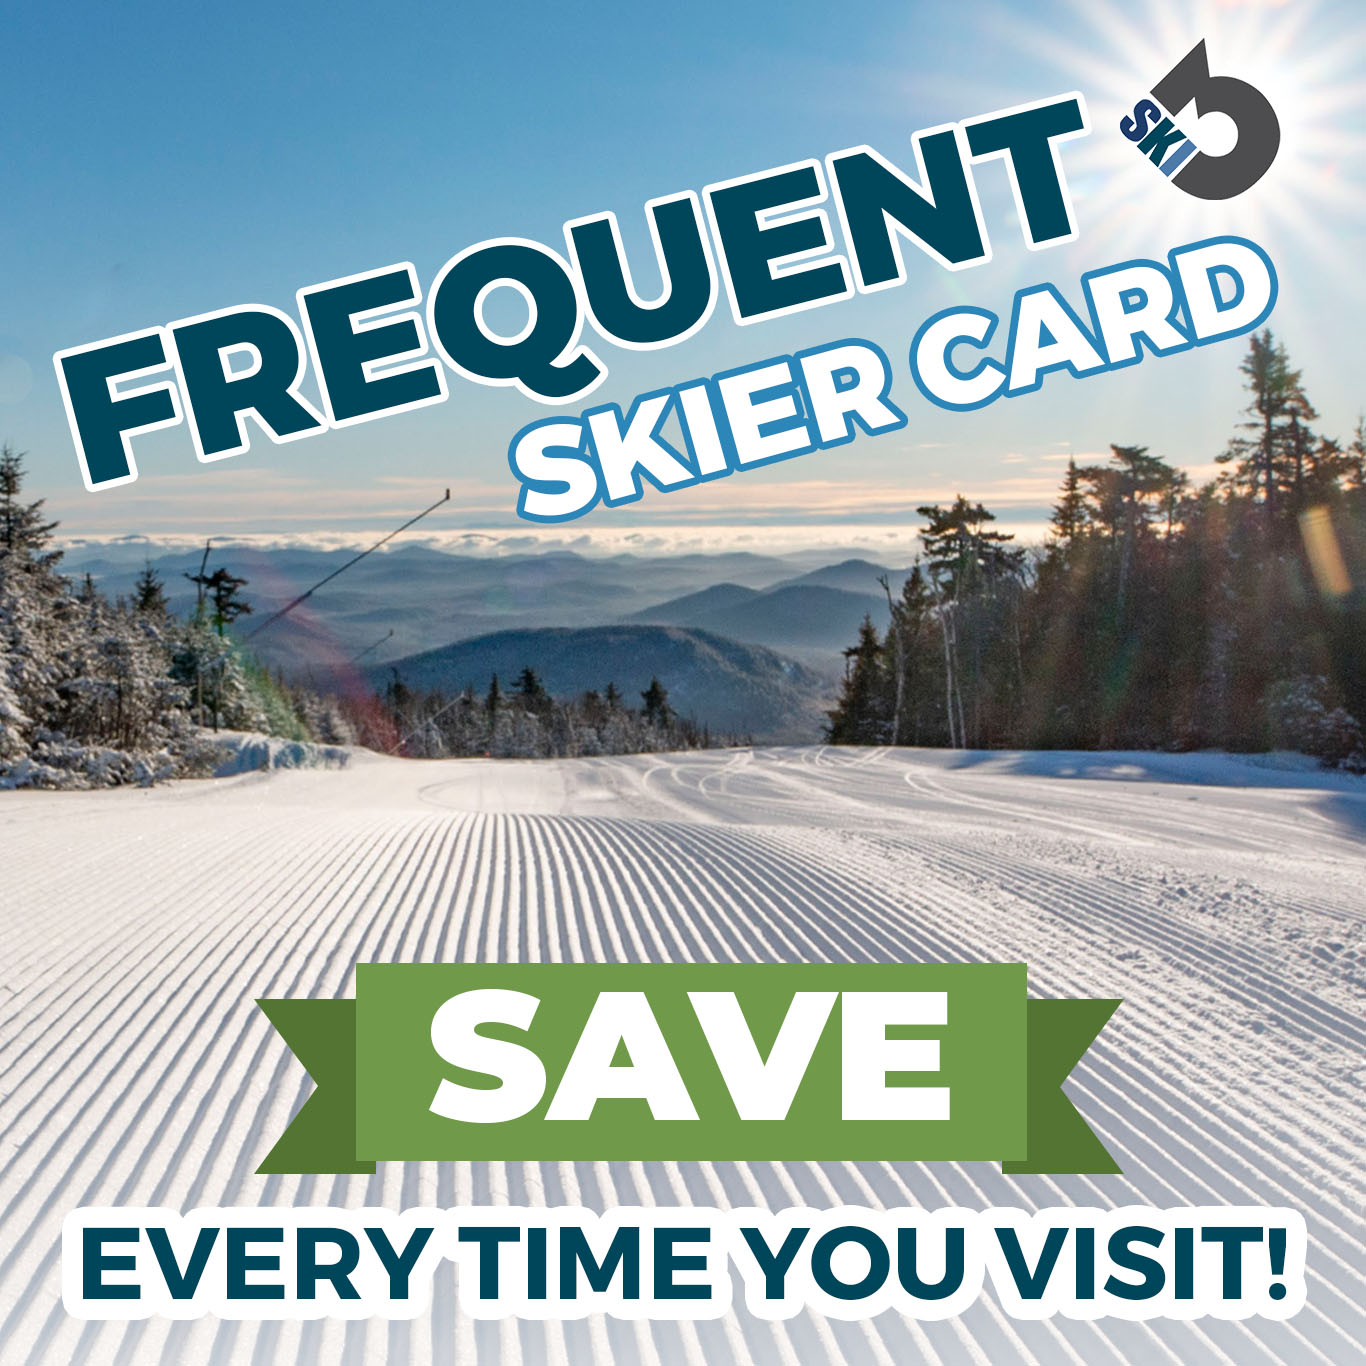 Fewquent Skier Card. Save every time you visit.